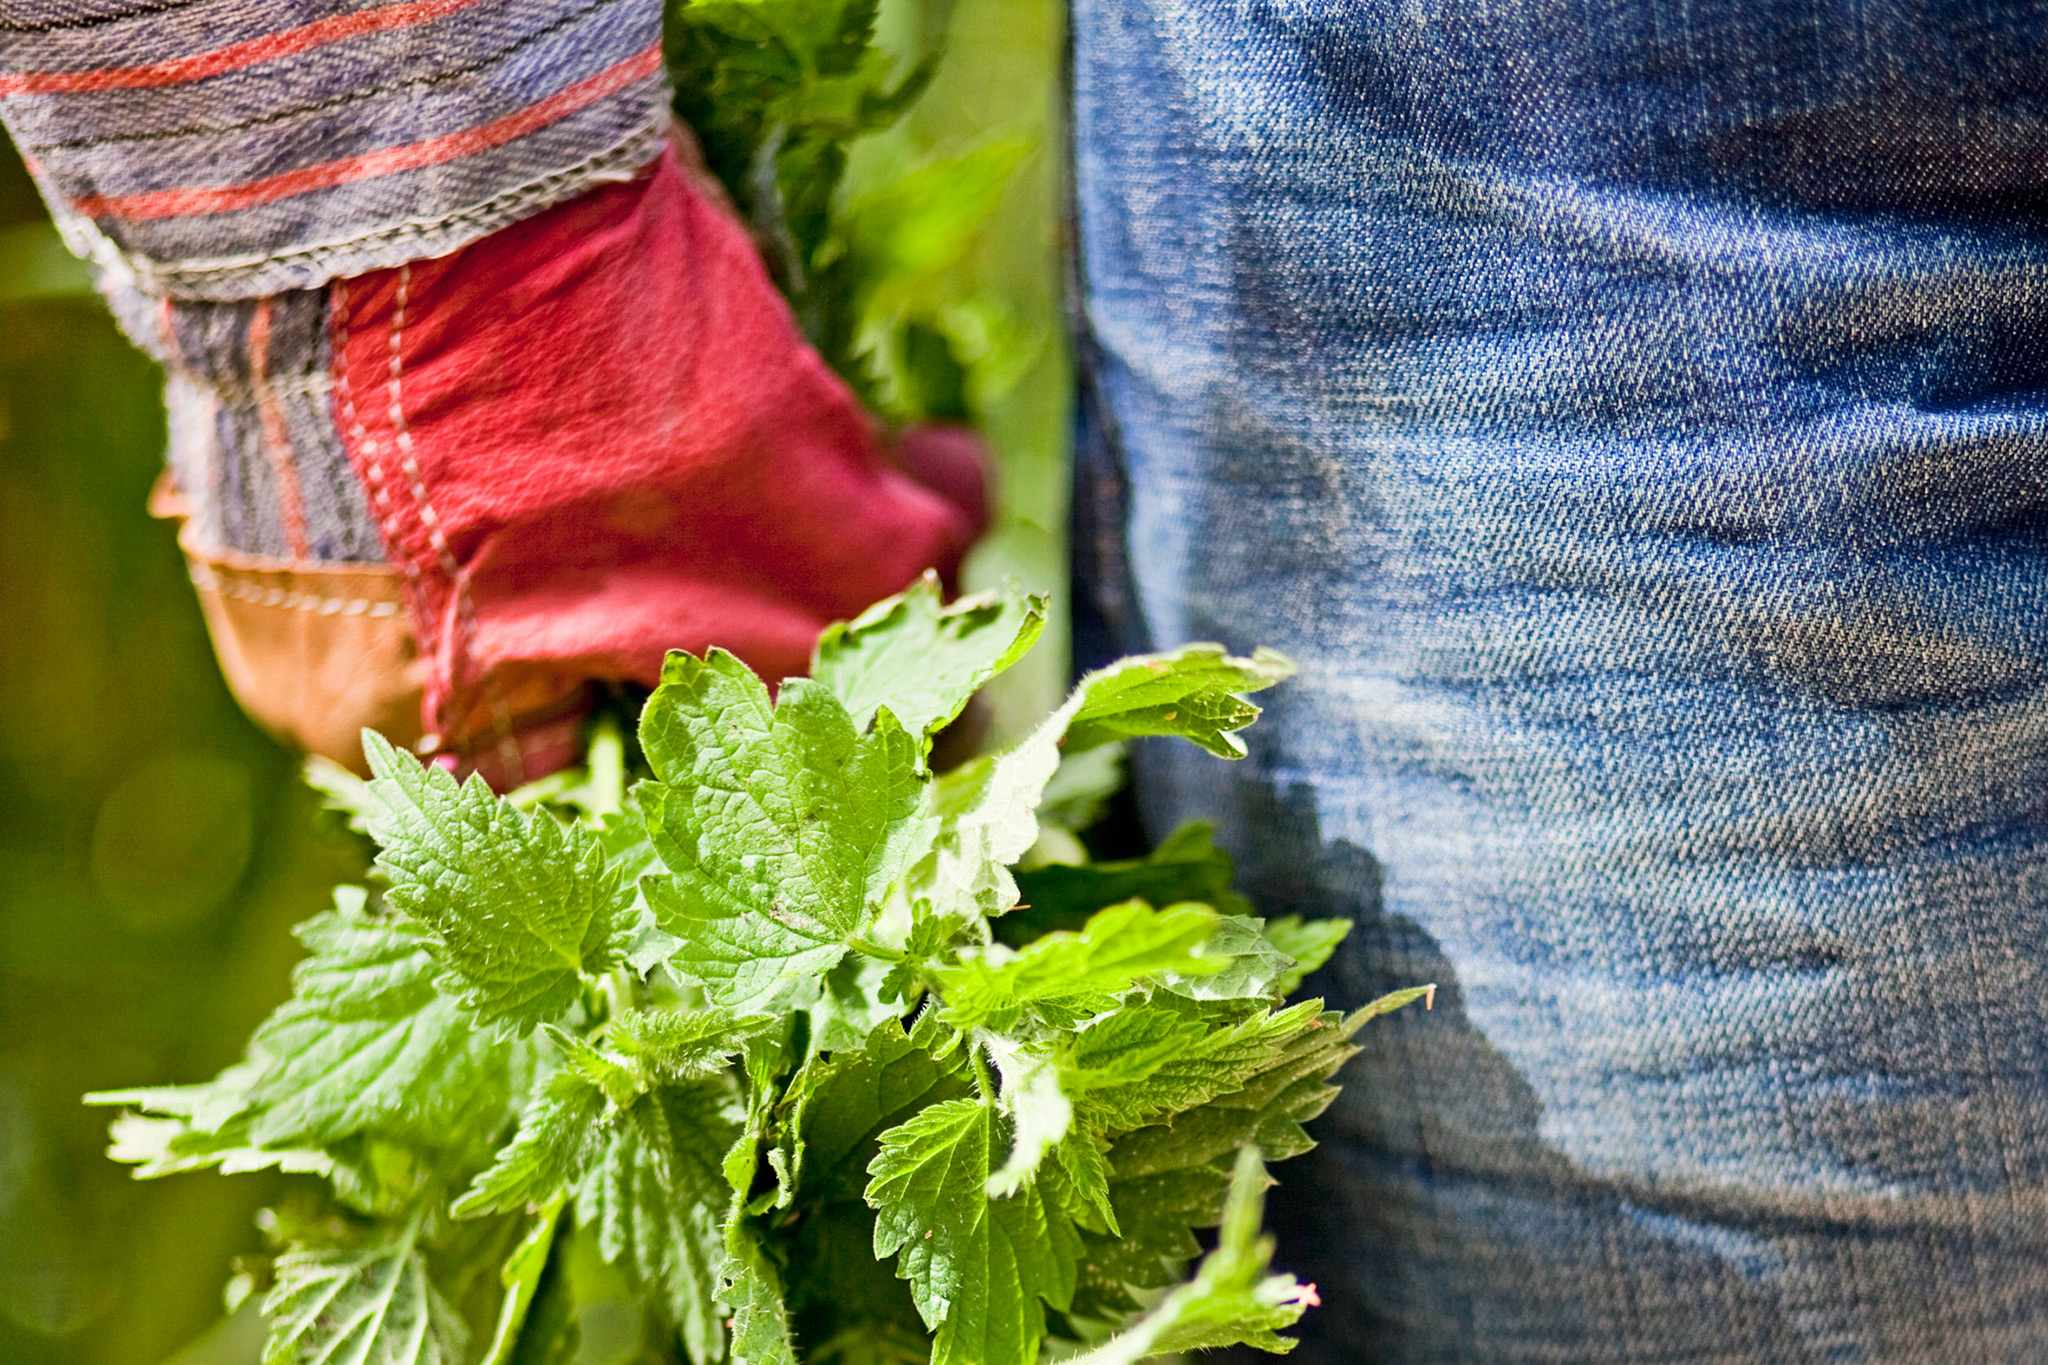 Carrying a bunch of nettles in a gloved hand